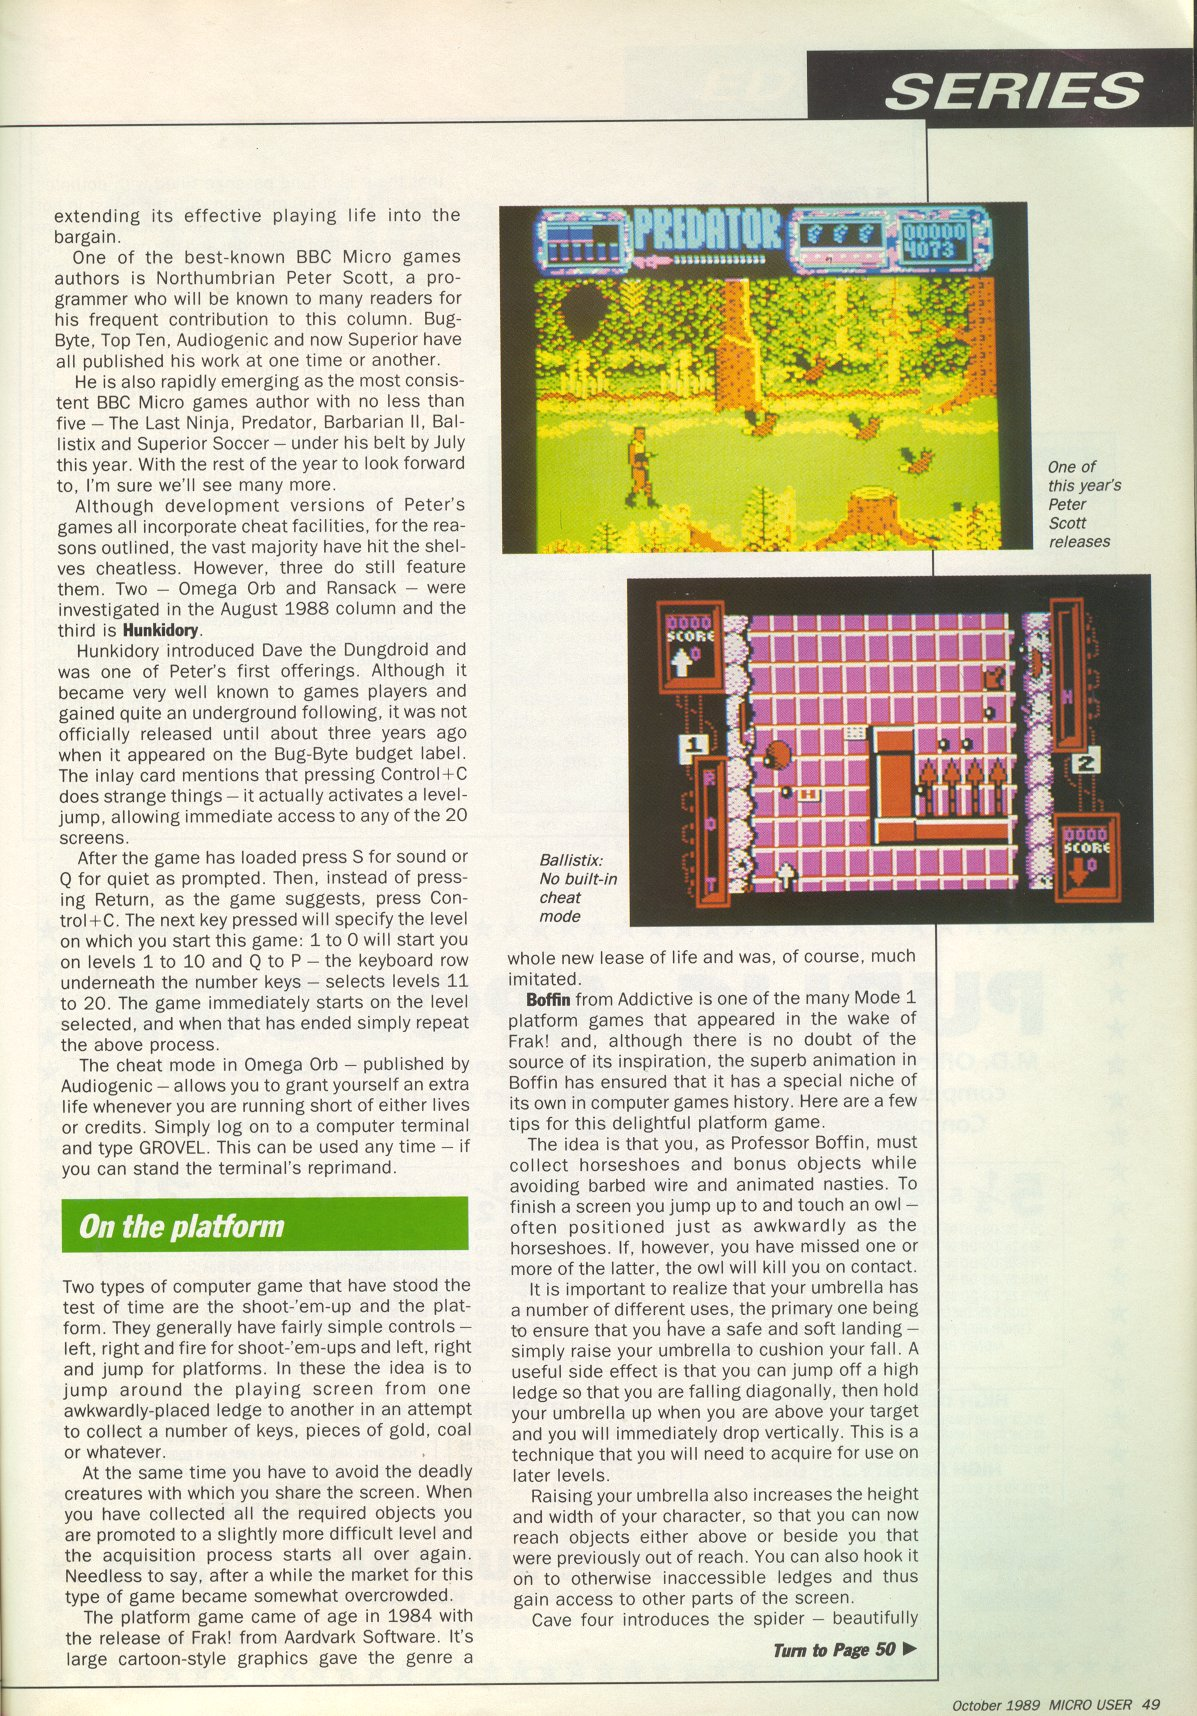 The BBC Micro and Electron Games Archive - WWW